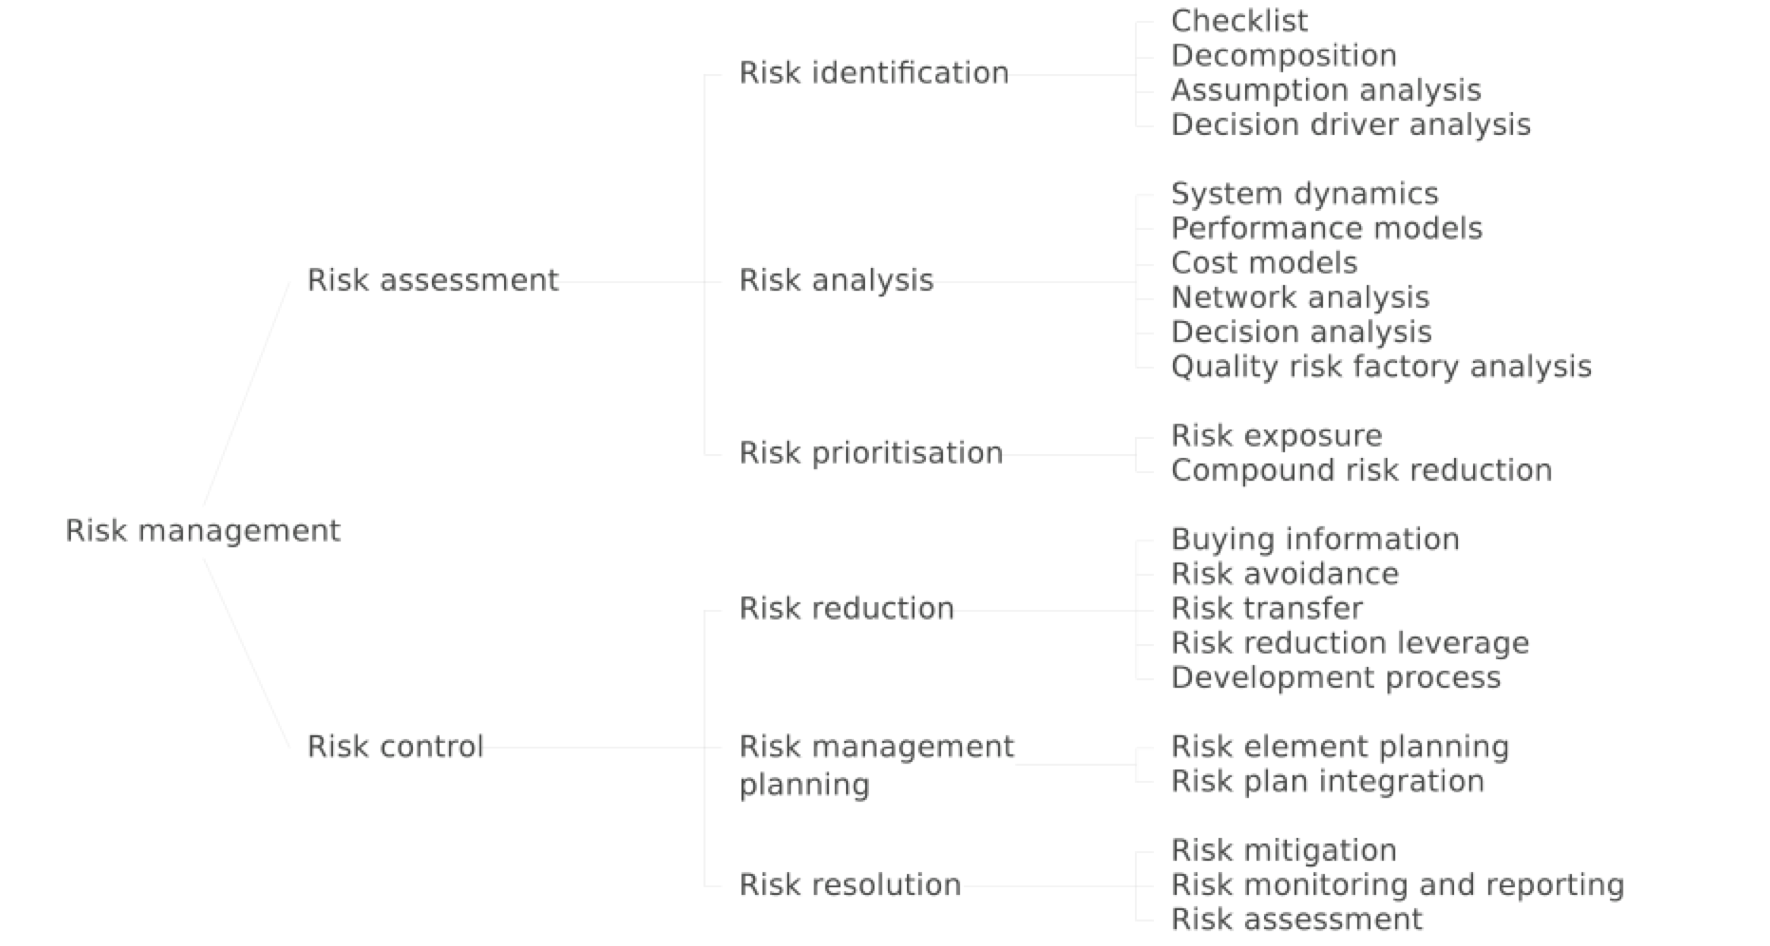 Risk assessment and control broken down further